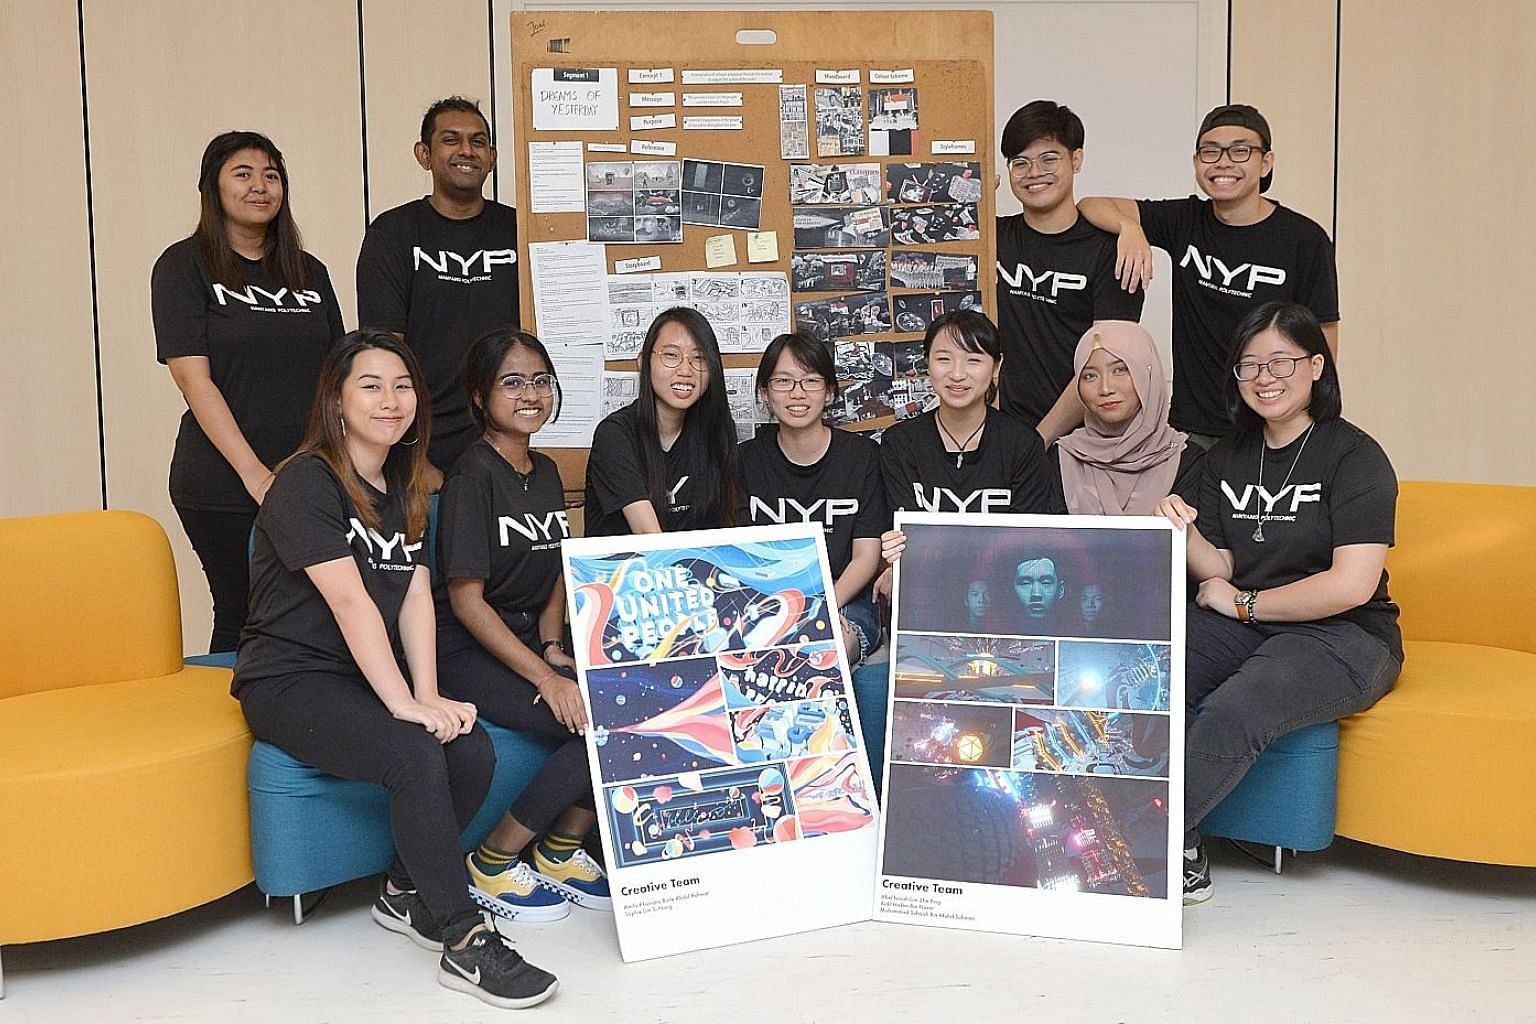 Students from Nanyang Polytechnic's School of Interactive & Digital Media, including 20-year-old Natalie Tan (first row, at far right), with storyboards of the animations they have created on Singapore's past, present and future for this year's Natio